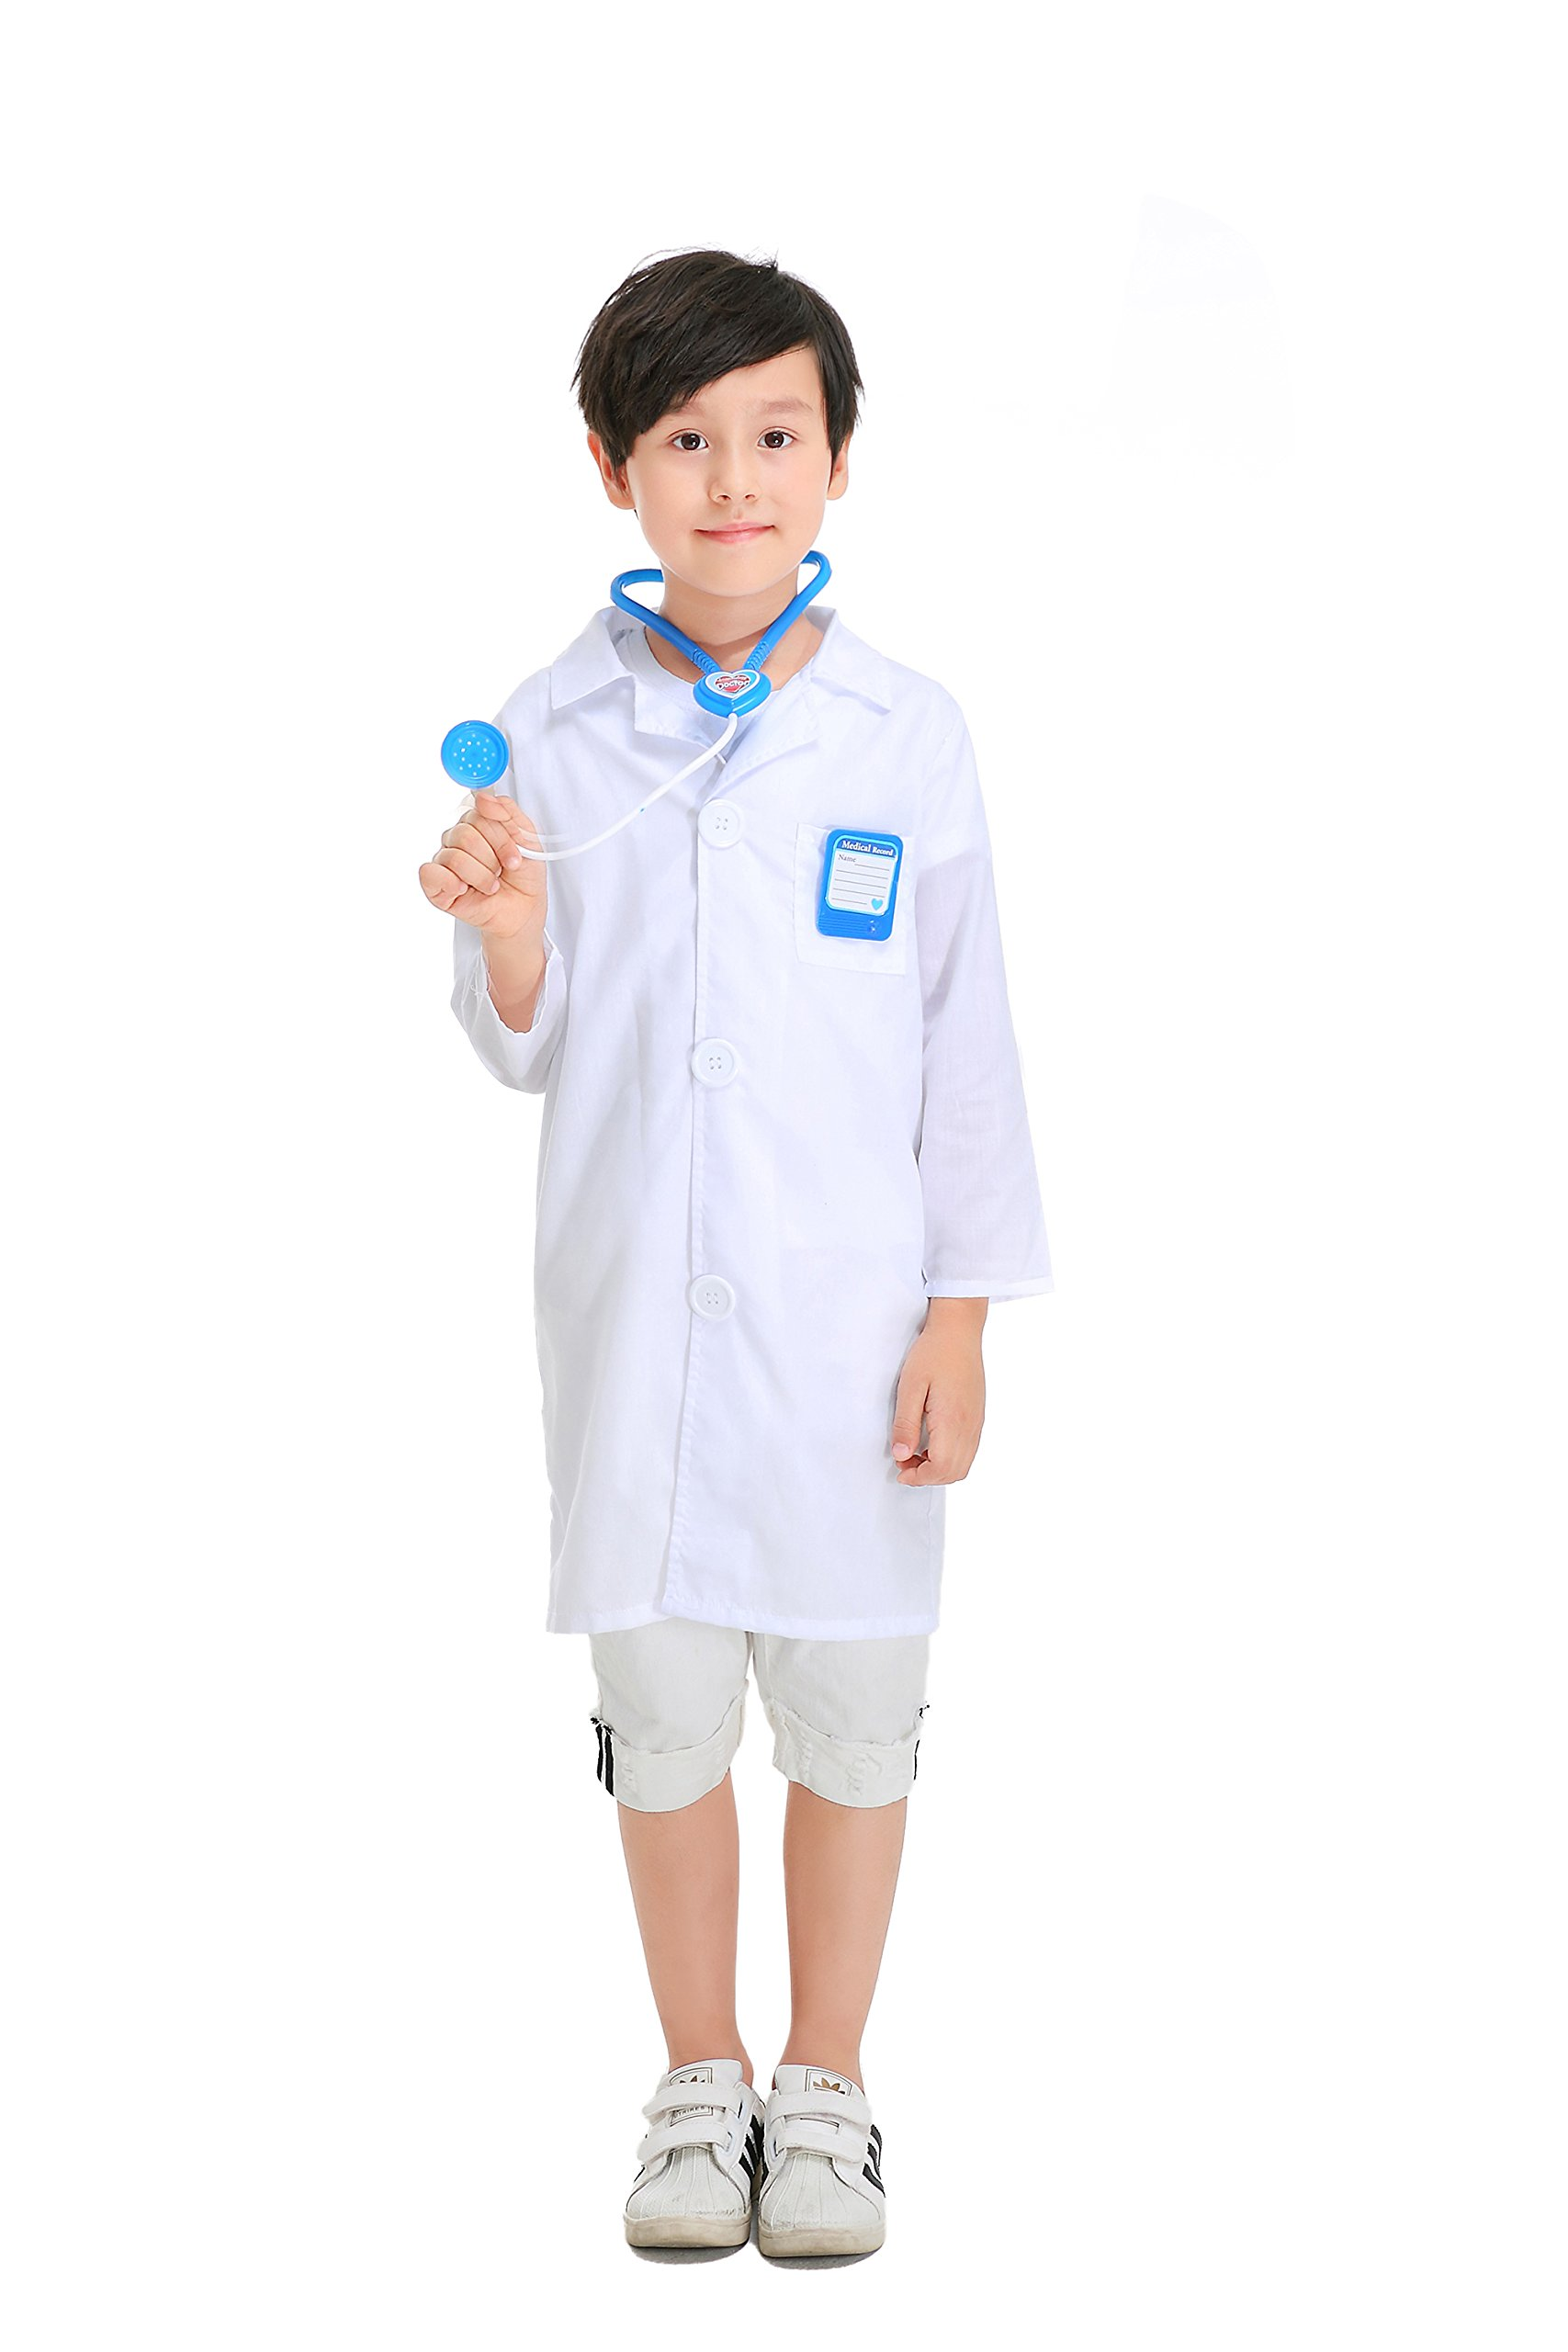 YOLSUN Lab Coat Role Play Costume Set for Kids, Boys' and Girls' Lab Dress up and Play Set (4-5Y, White)